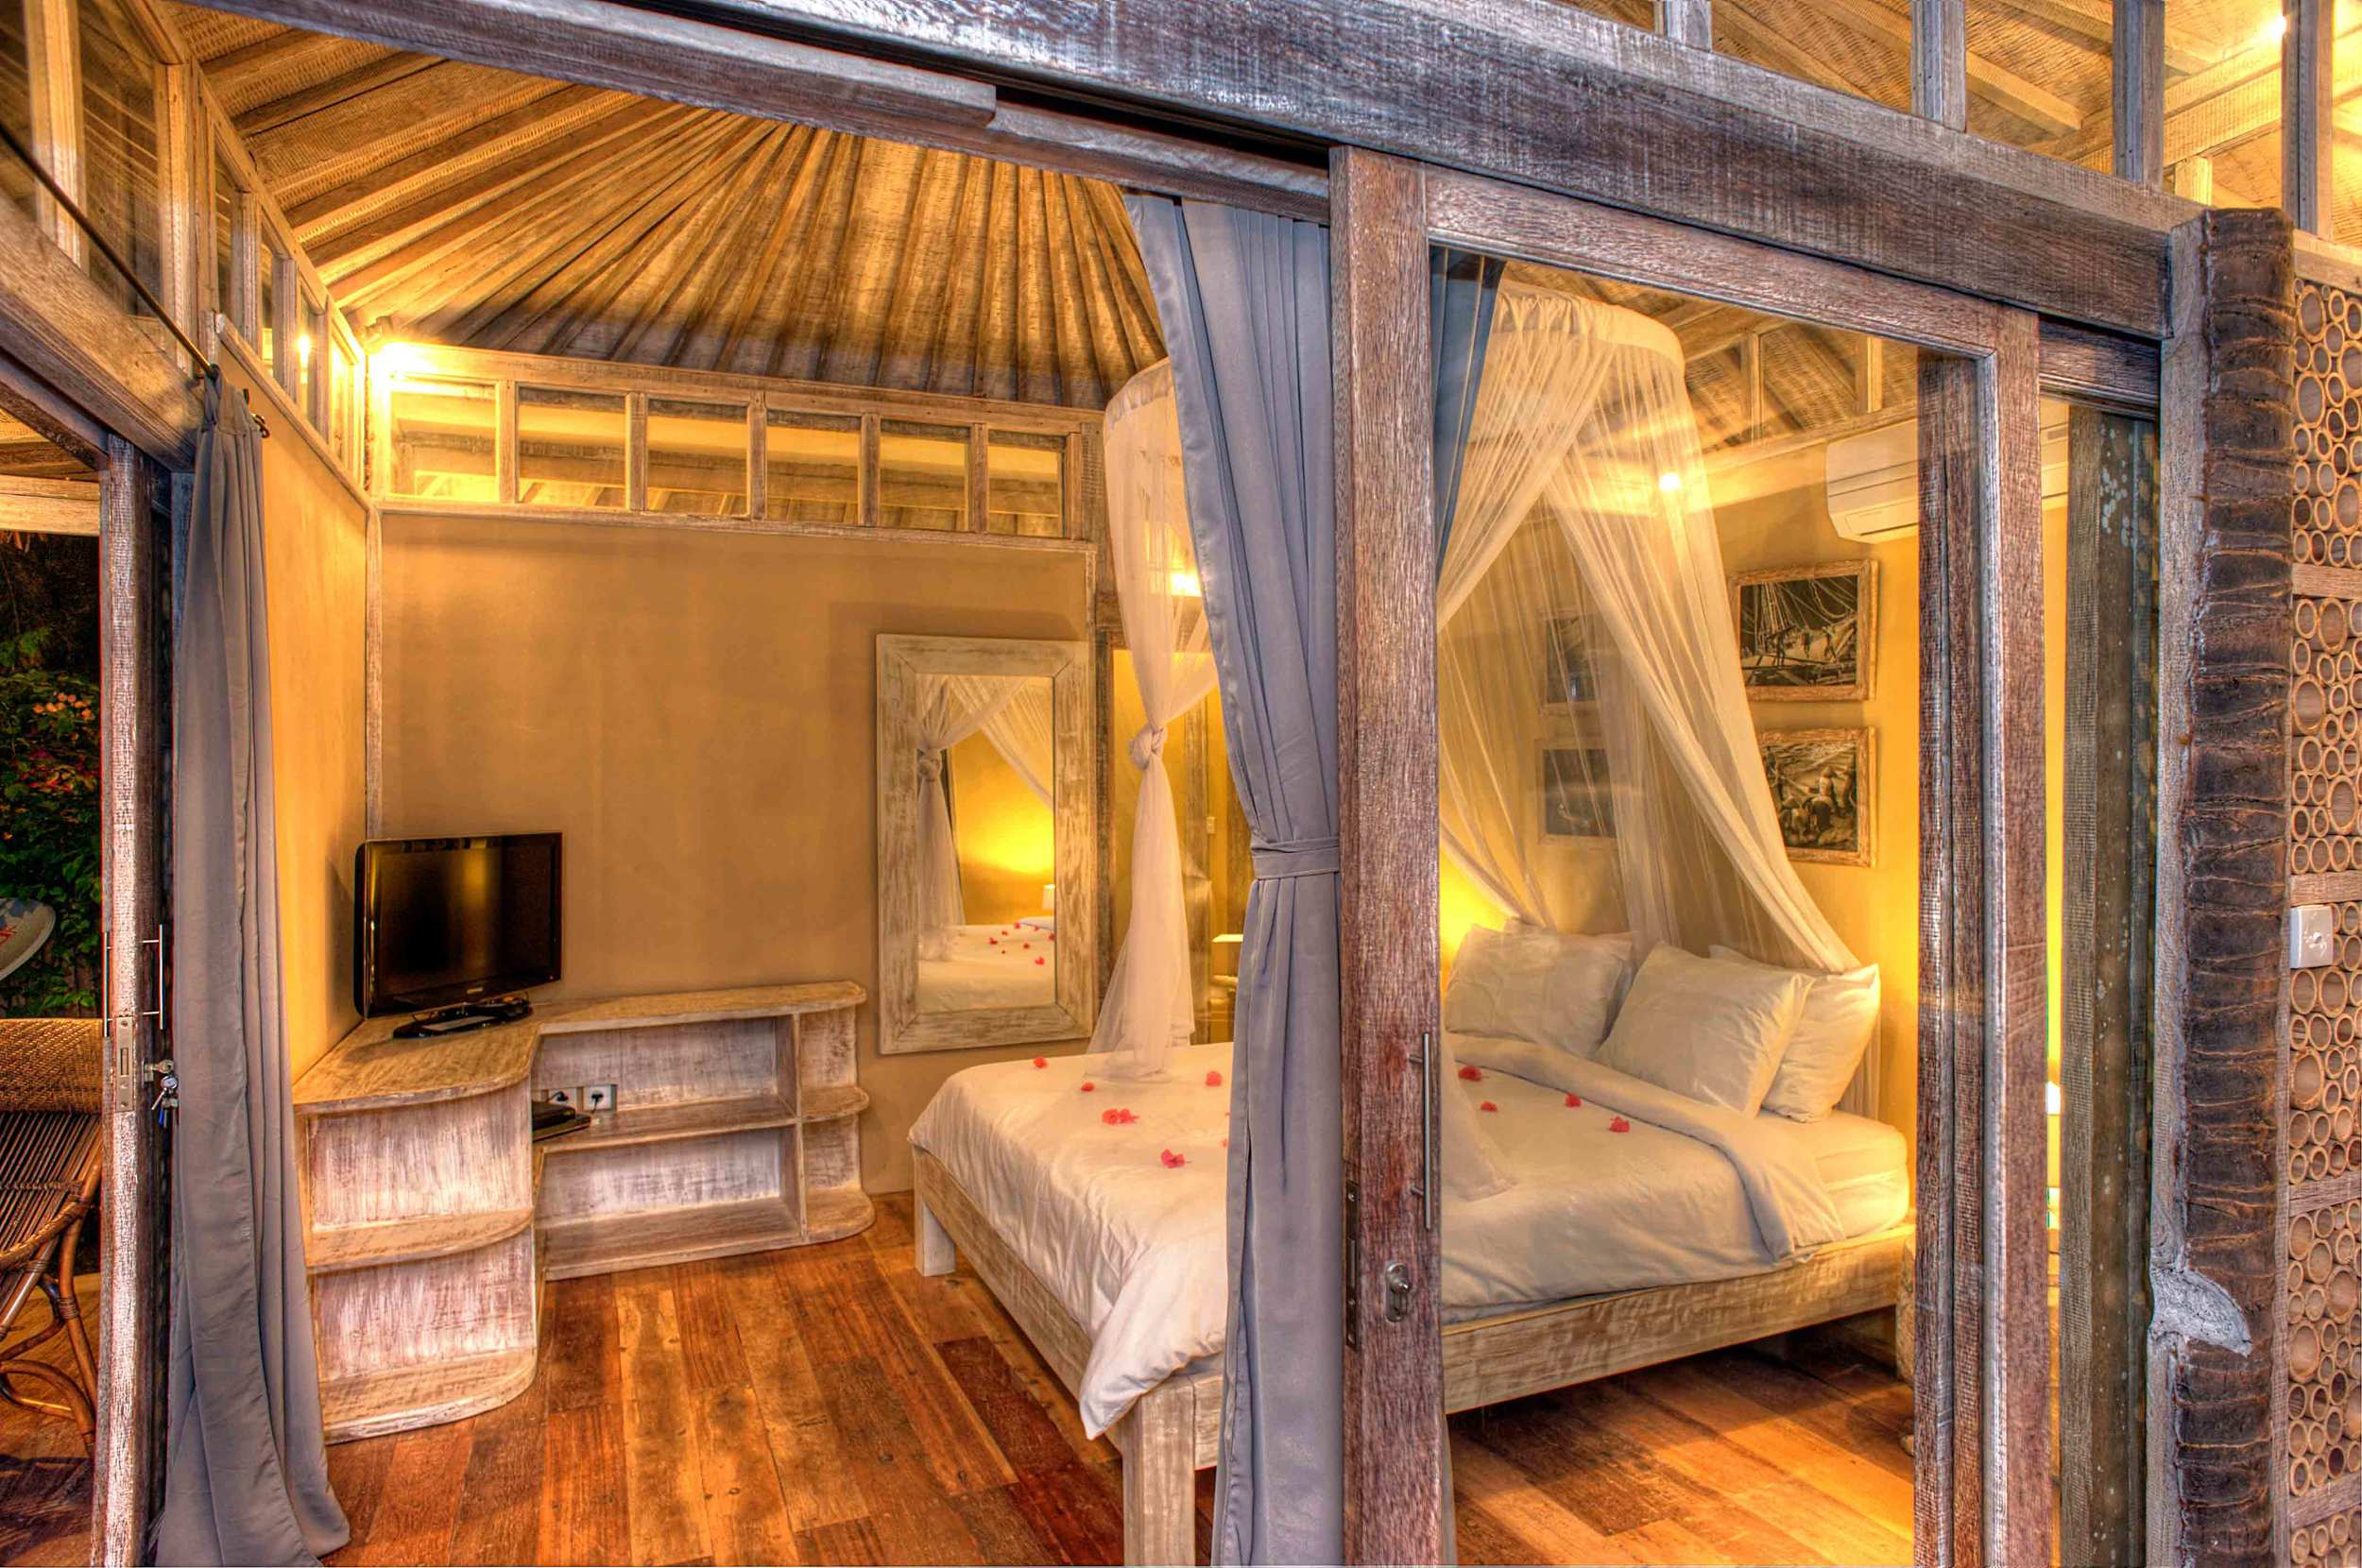 Bedroom king size bed by night - Les Villas Ottalia